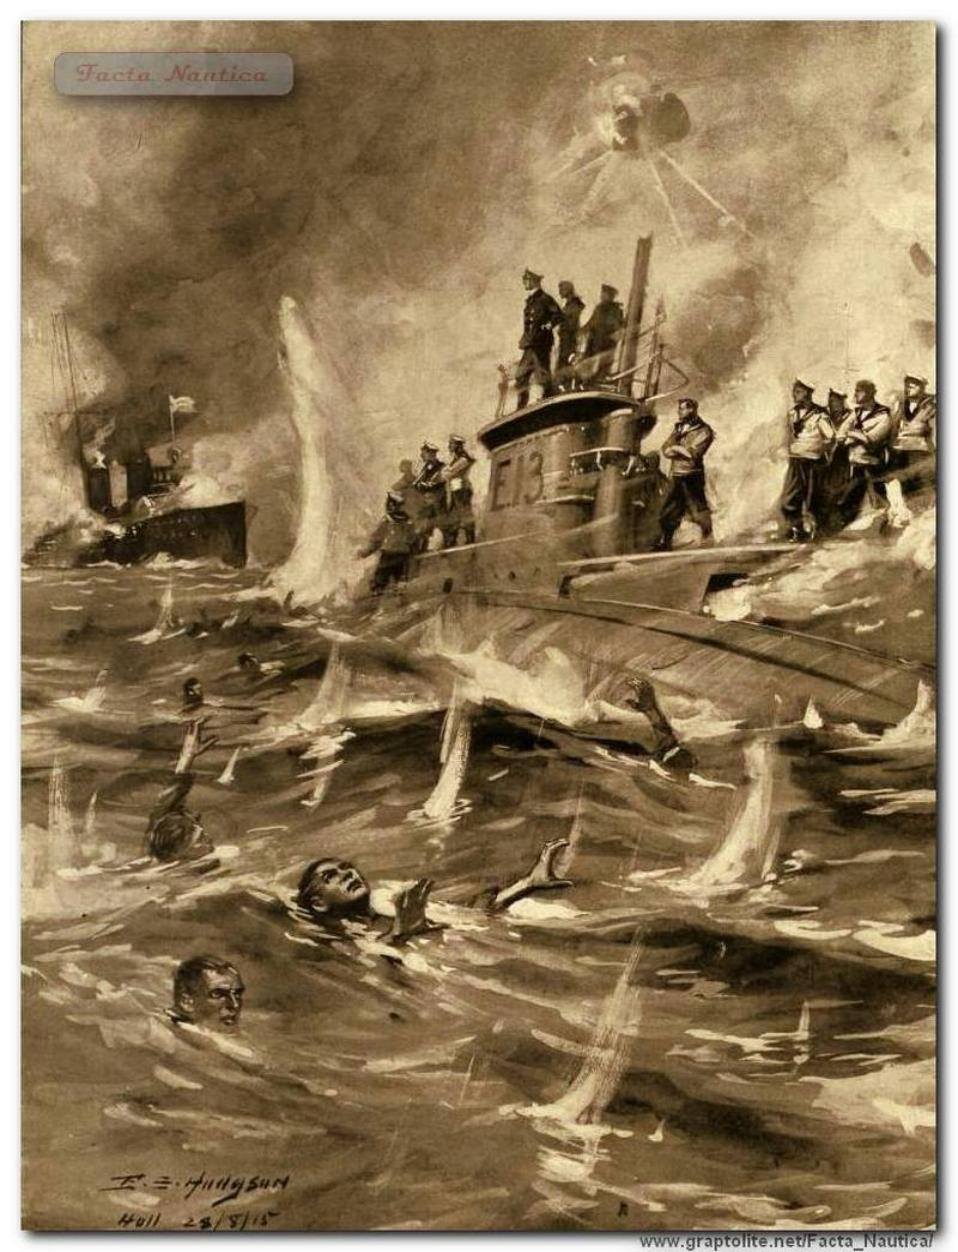 Brytyjski okr�t podwodny HMS E13 ostrzeliwany przez niemieckie torpedowce - 19 sierpnia 1915. 19 August 1915: The German torpedo boat attacks stranded British submarine HMS E13 in Danish waters and shoots crew.